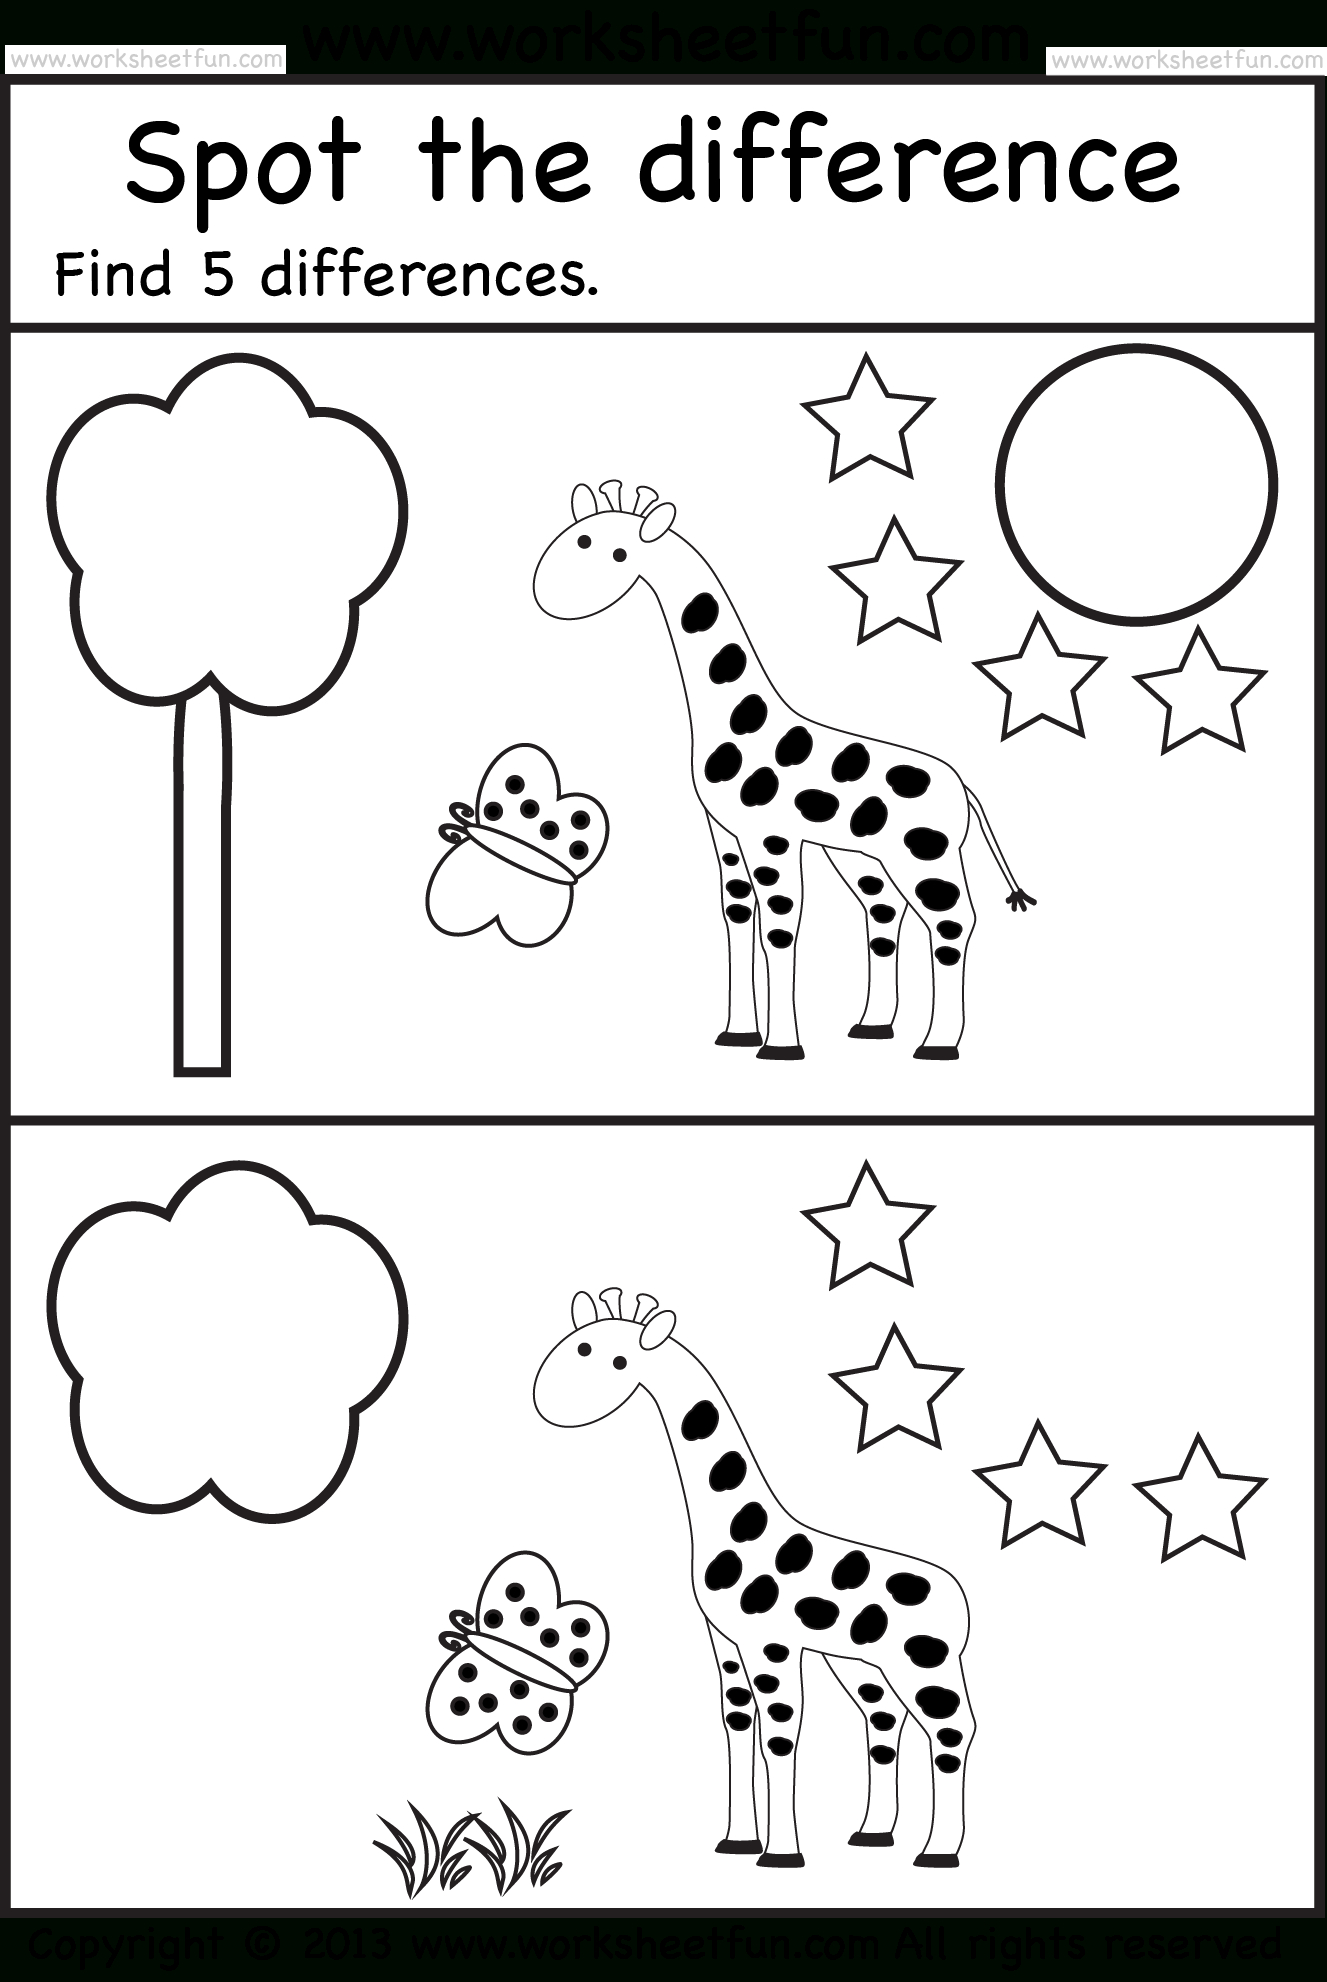 Spot The Difference | Actividades Escritas | Pinterest - Free Printable Spot The Difference For Kids